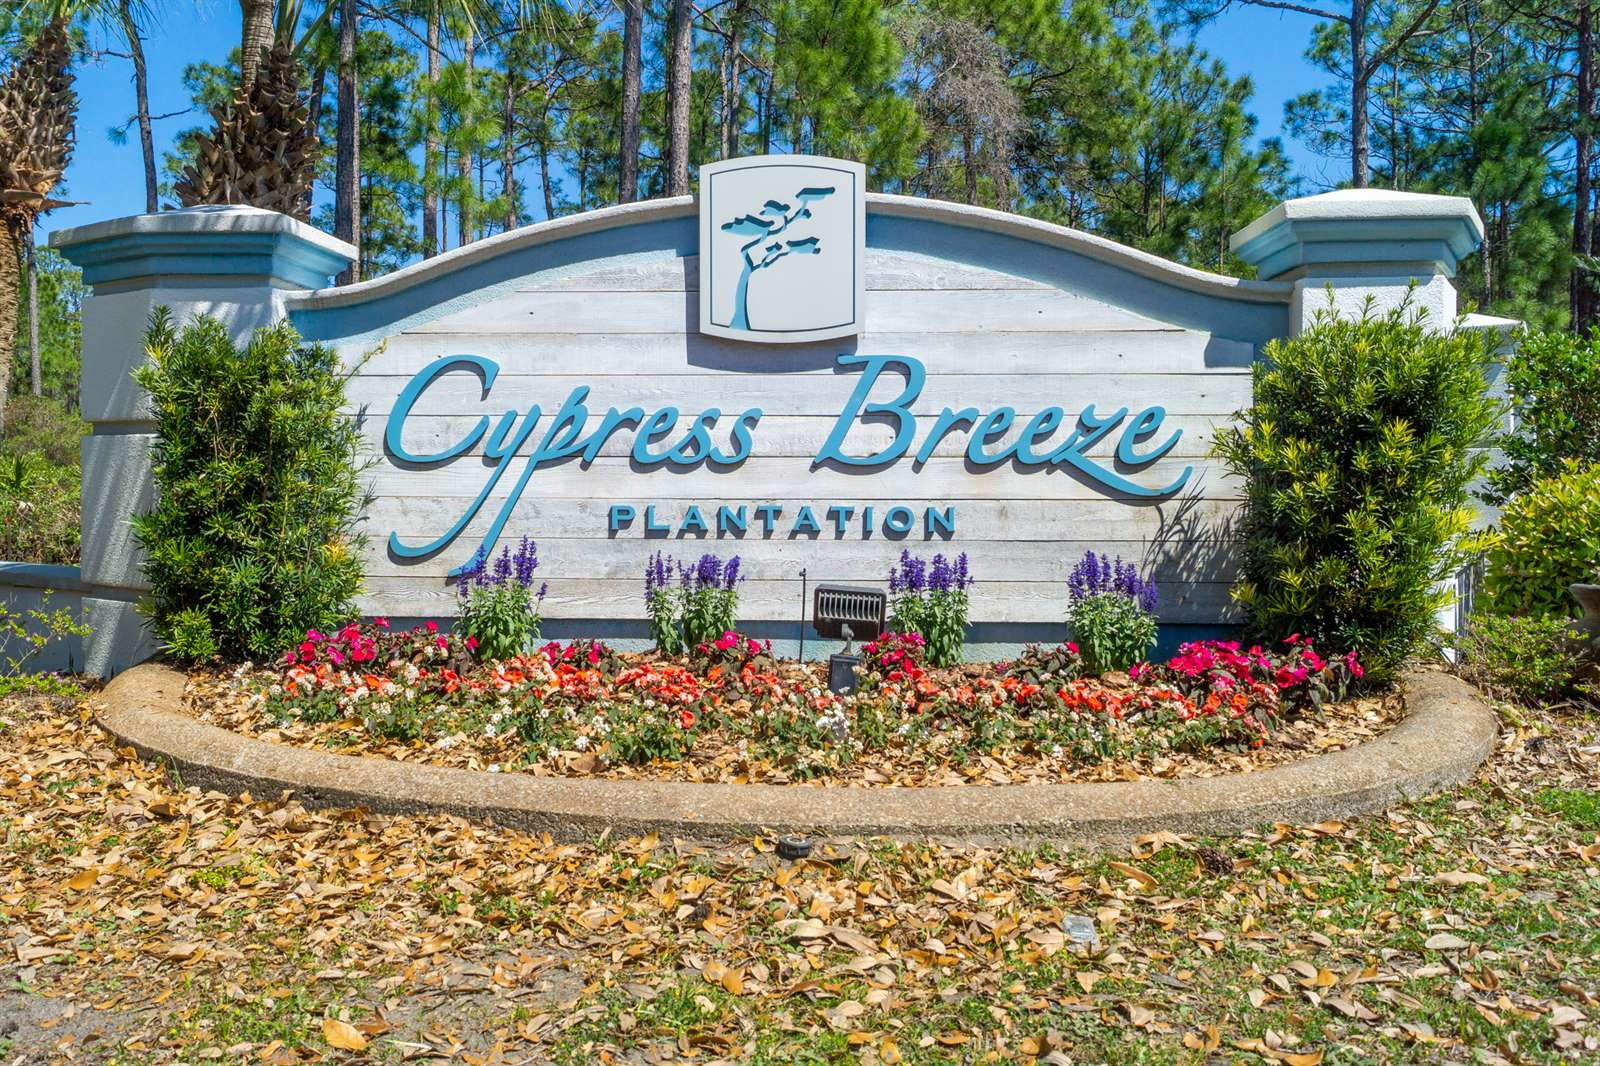 Lot 35 South Cypress Breeze Boulevard, Santa Rosa Beach, FL 32459